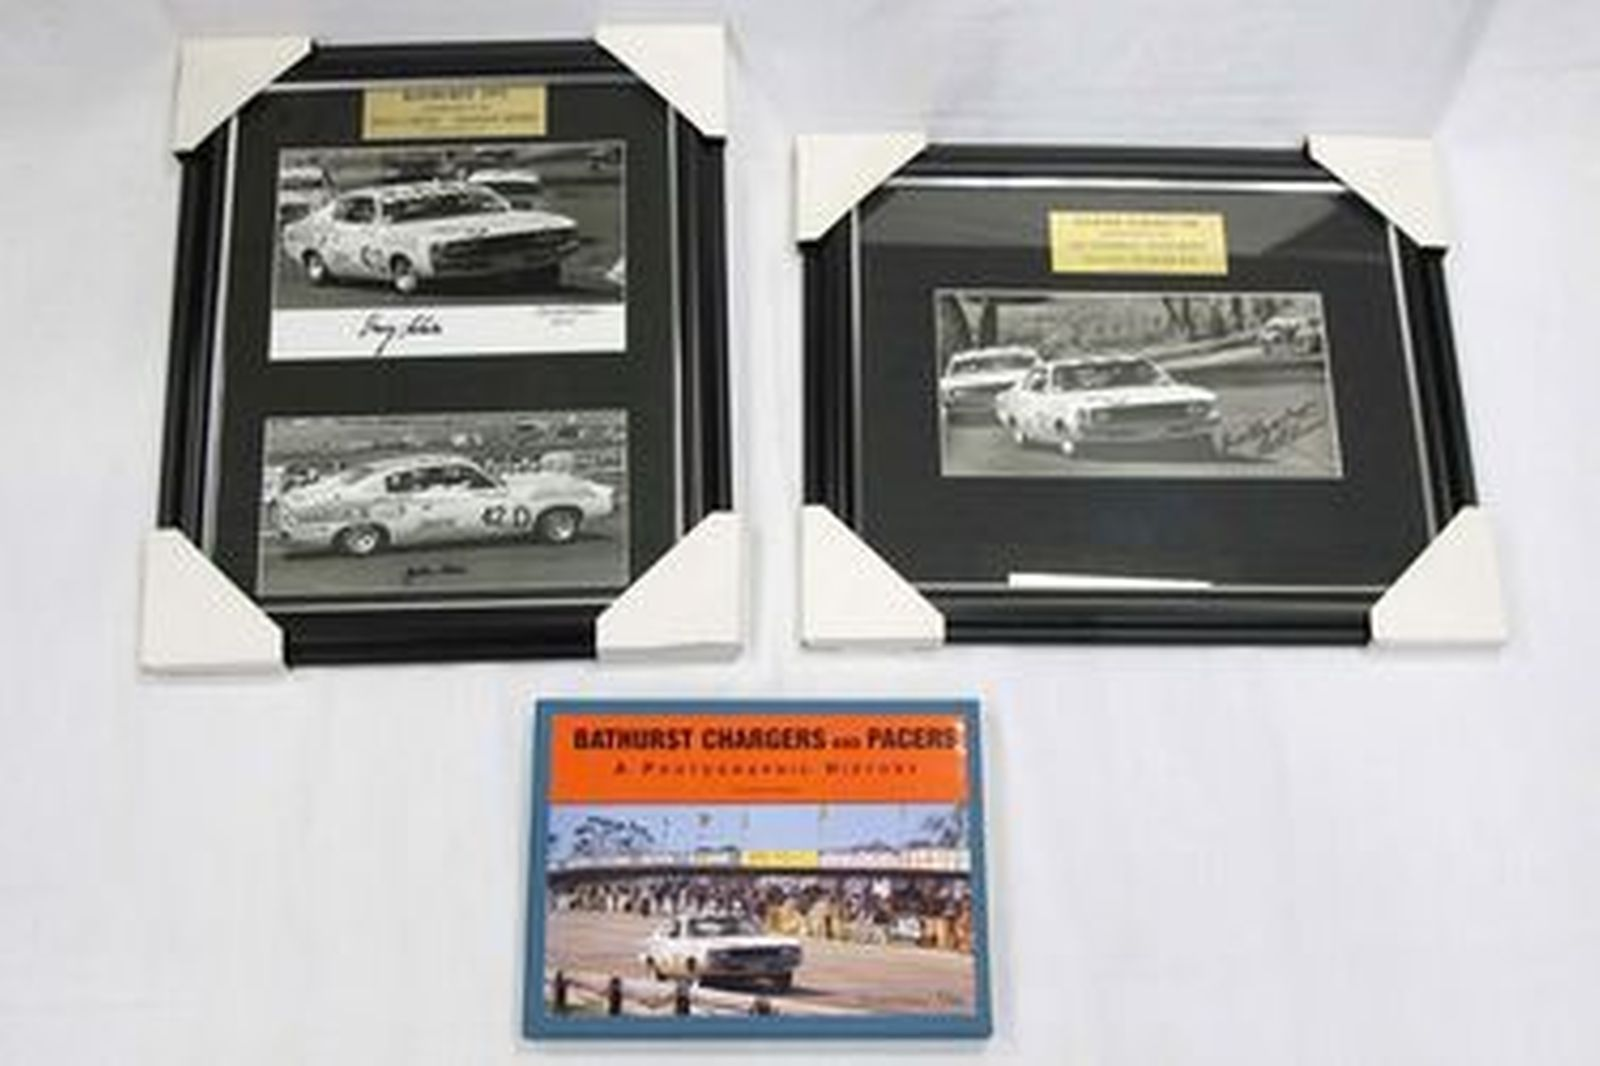 2 x Framed Charger Photos (Signed) and 1 x Bathurst Chargers & Pacers Photographic Book (Signed)